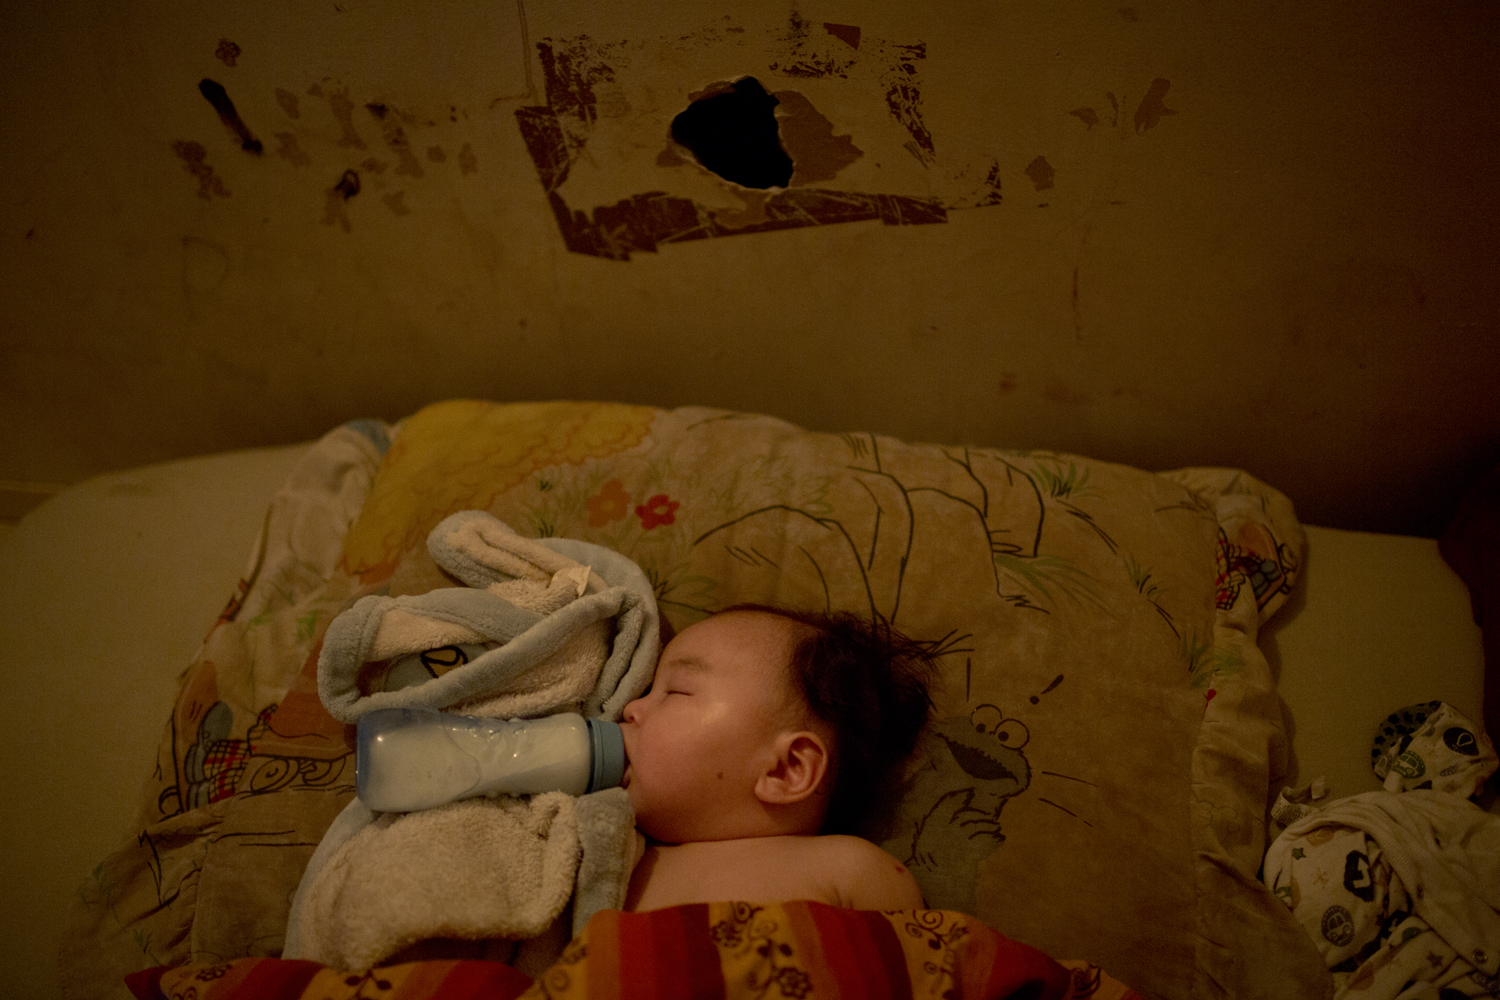 Arviat, Canada on Nov. 2, 2013. Seven-month-old Henry Edward Thompson drinks baby formula in bed.